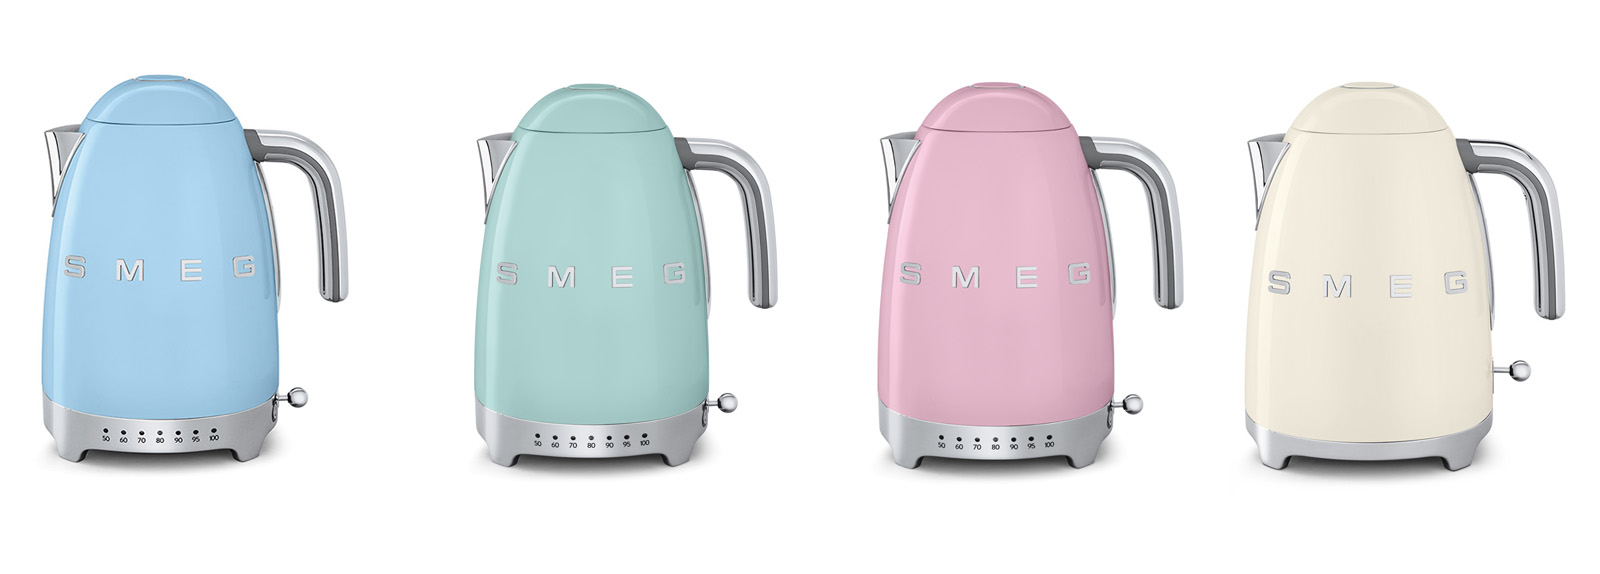 Uncategorized Retro Small Kitchen Appliances meet the new smeg 50s retro style small home appliances collect this idea 2